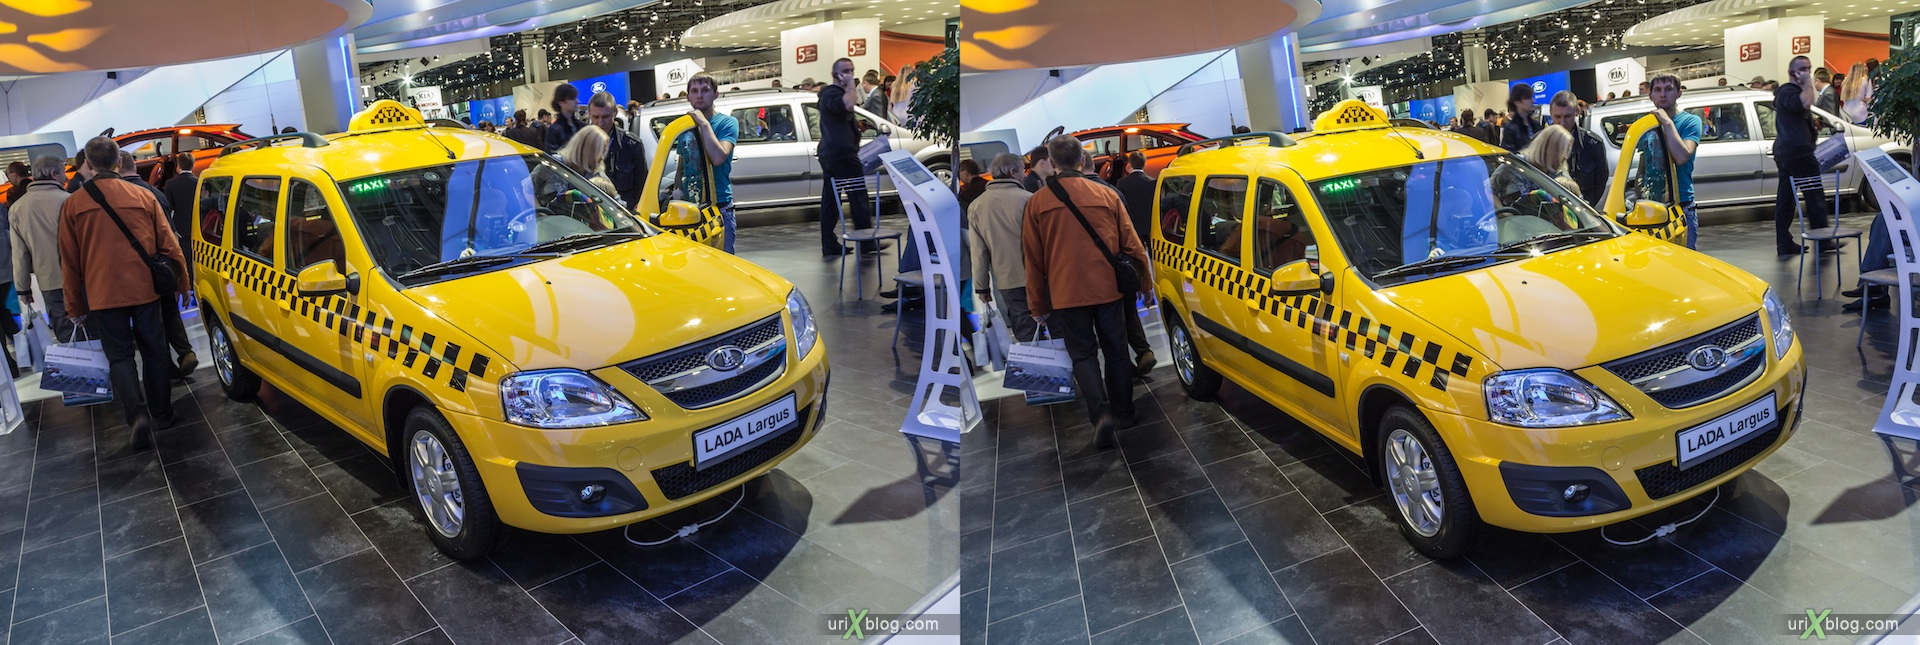 2012, Lada Largus, Moscow International Automobile Salon, auto show, 3D, stereo pair, cross-eyed, crossview